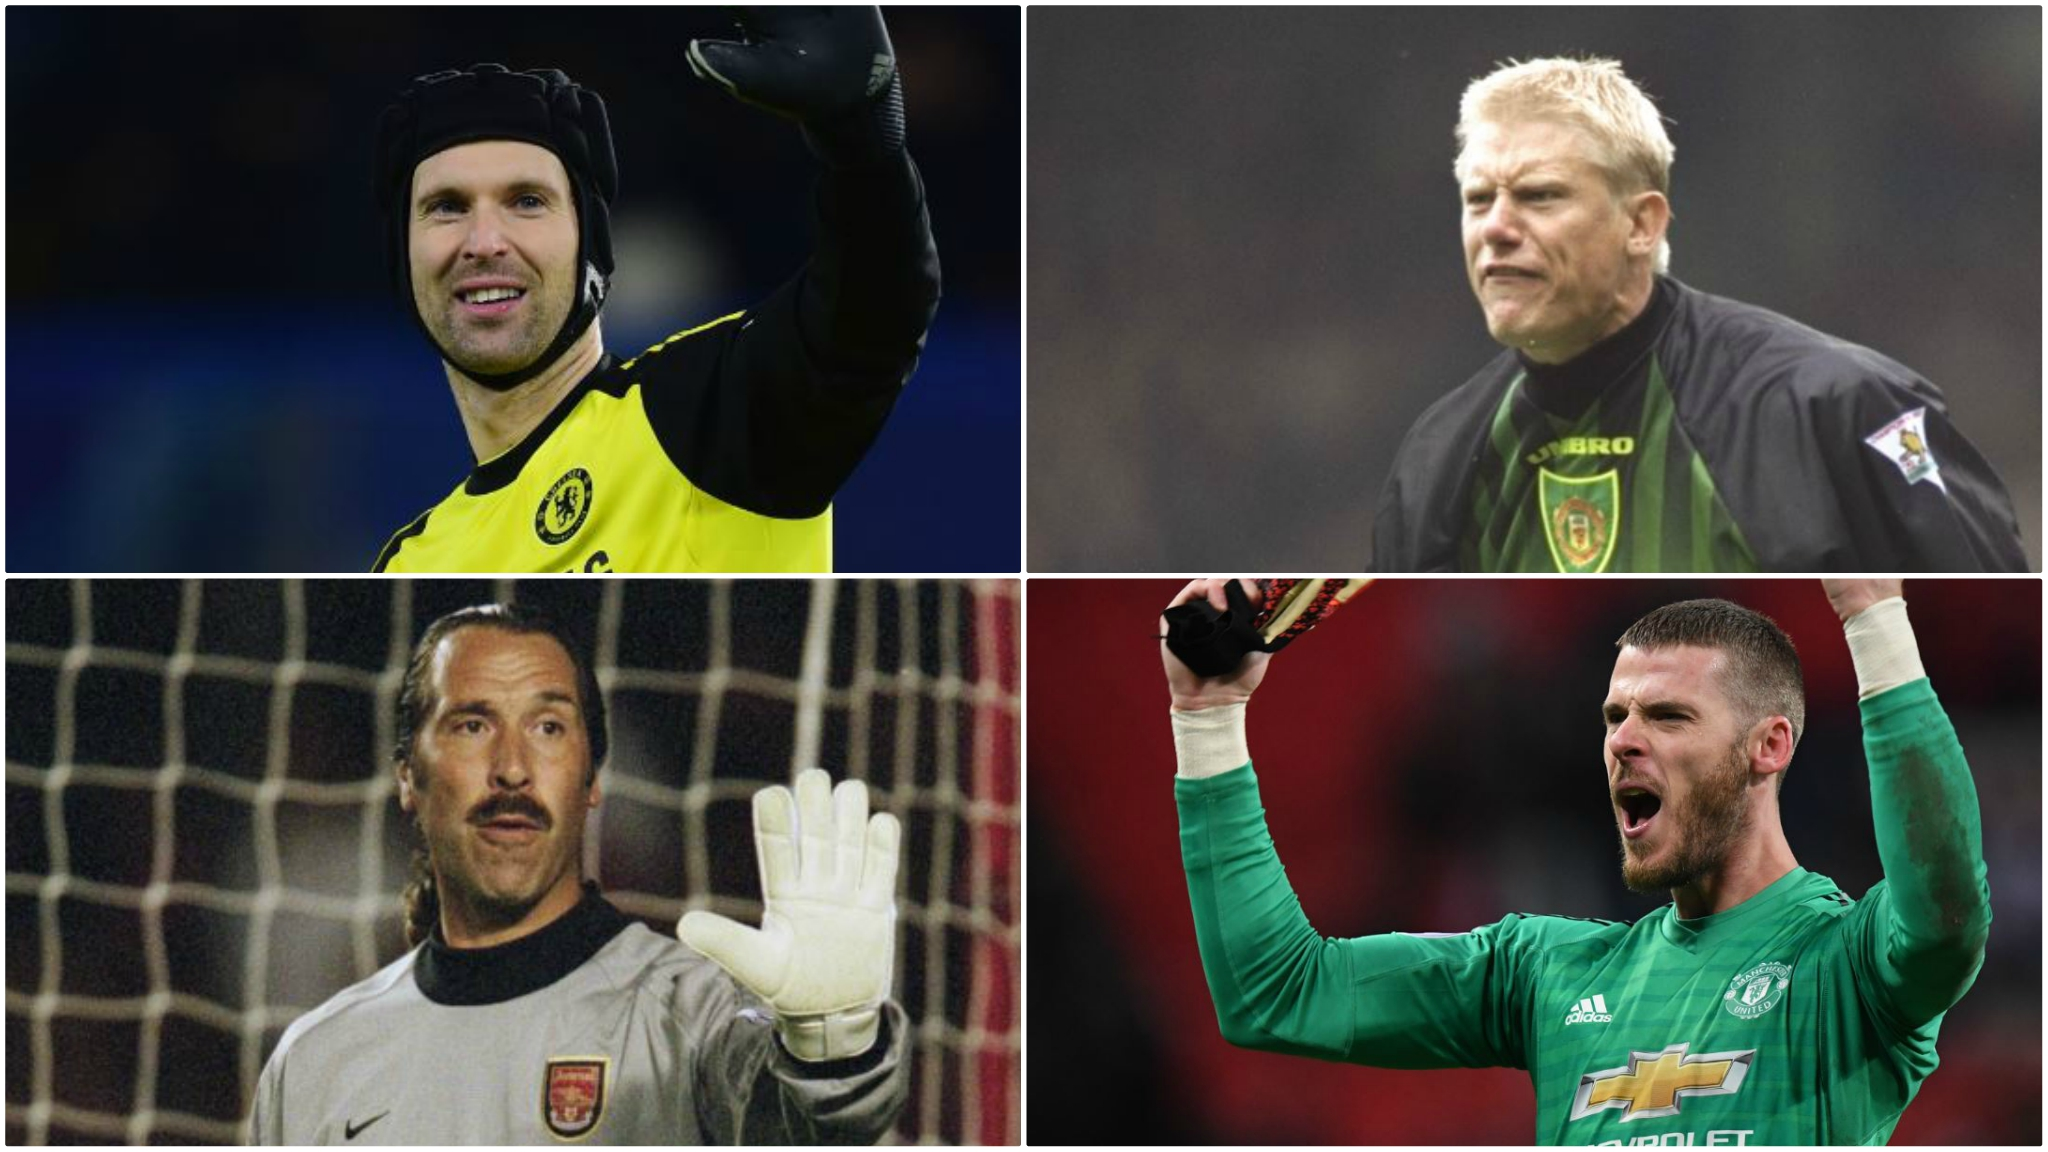 Petr Cech to retire: Who did you pick as best keeper in Premier League history?